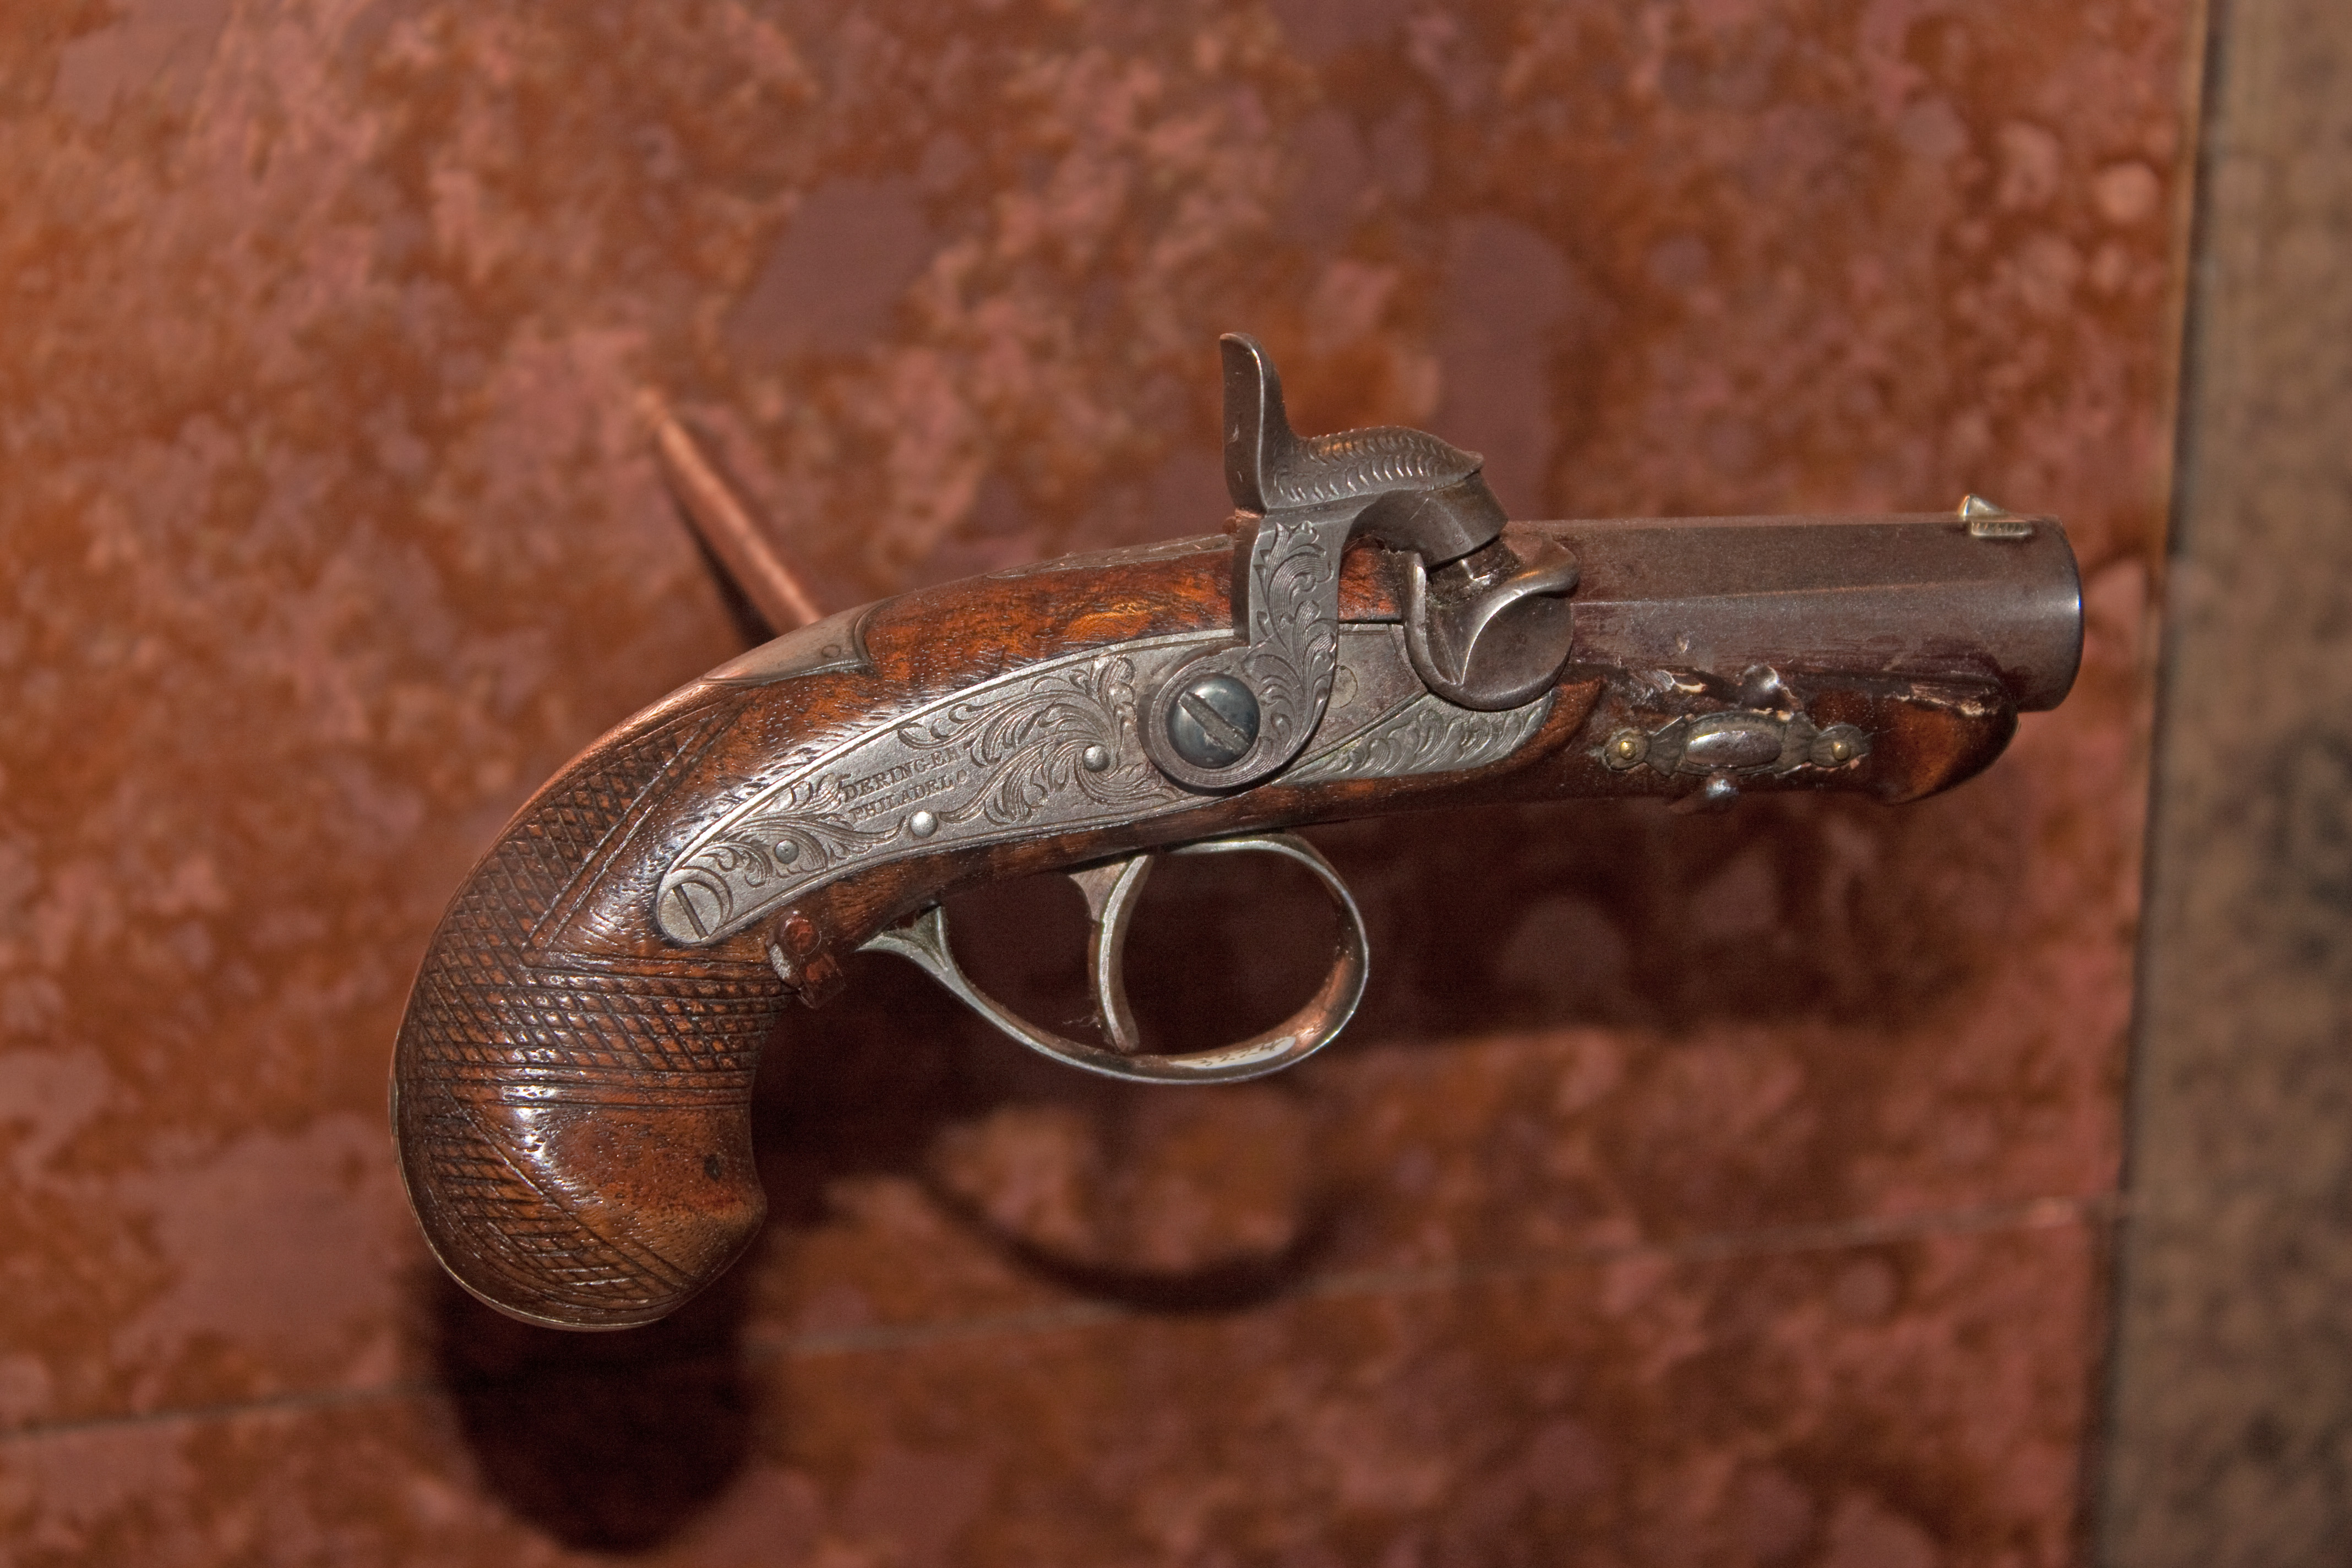 File:Gun used to assassinate Abraham Lincoln on display at Ford's Theatre, Washington, D.C.jpg - Wikimedia Commons